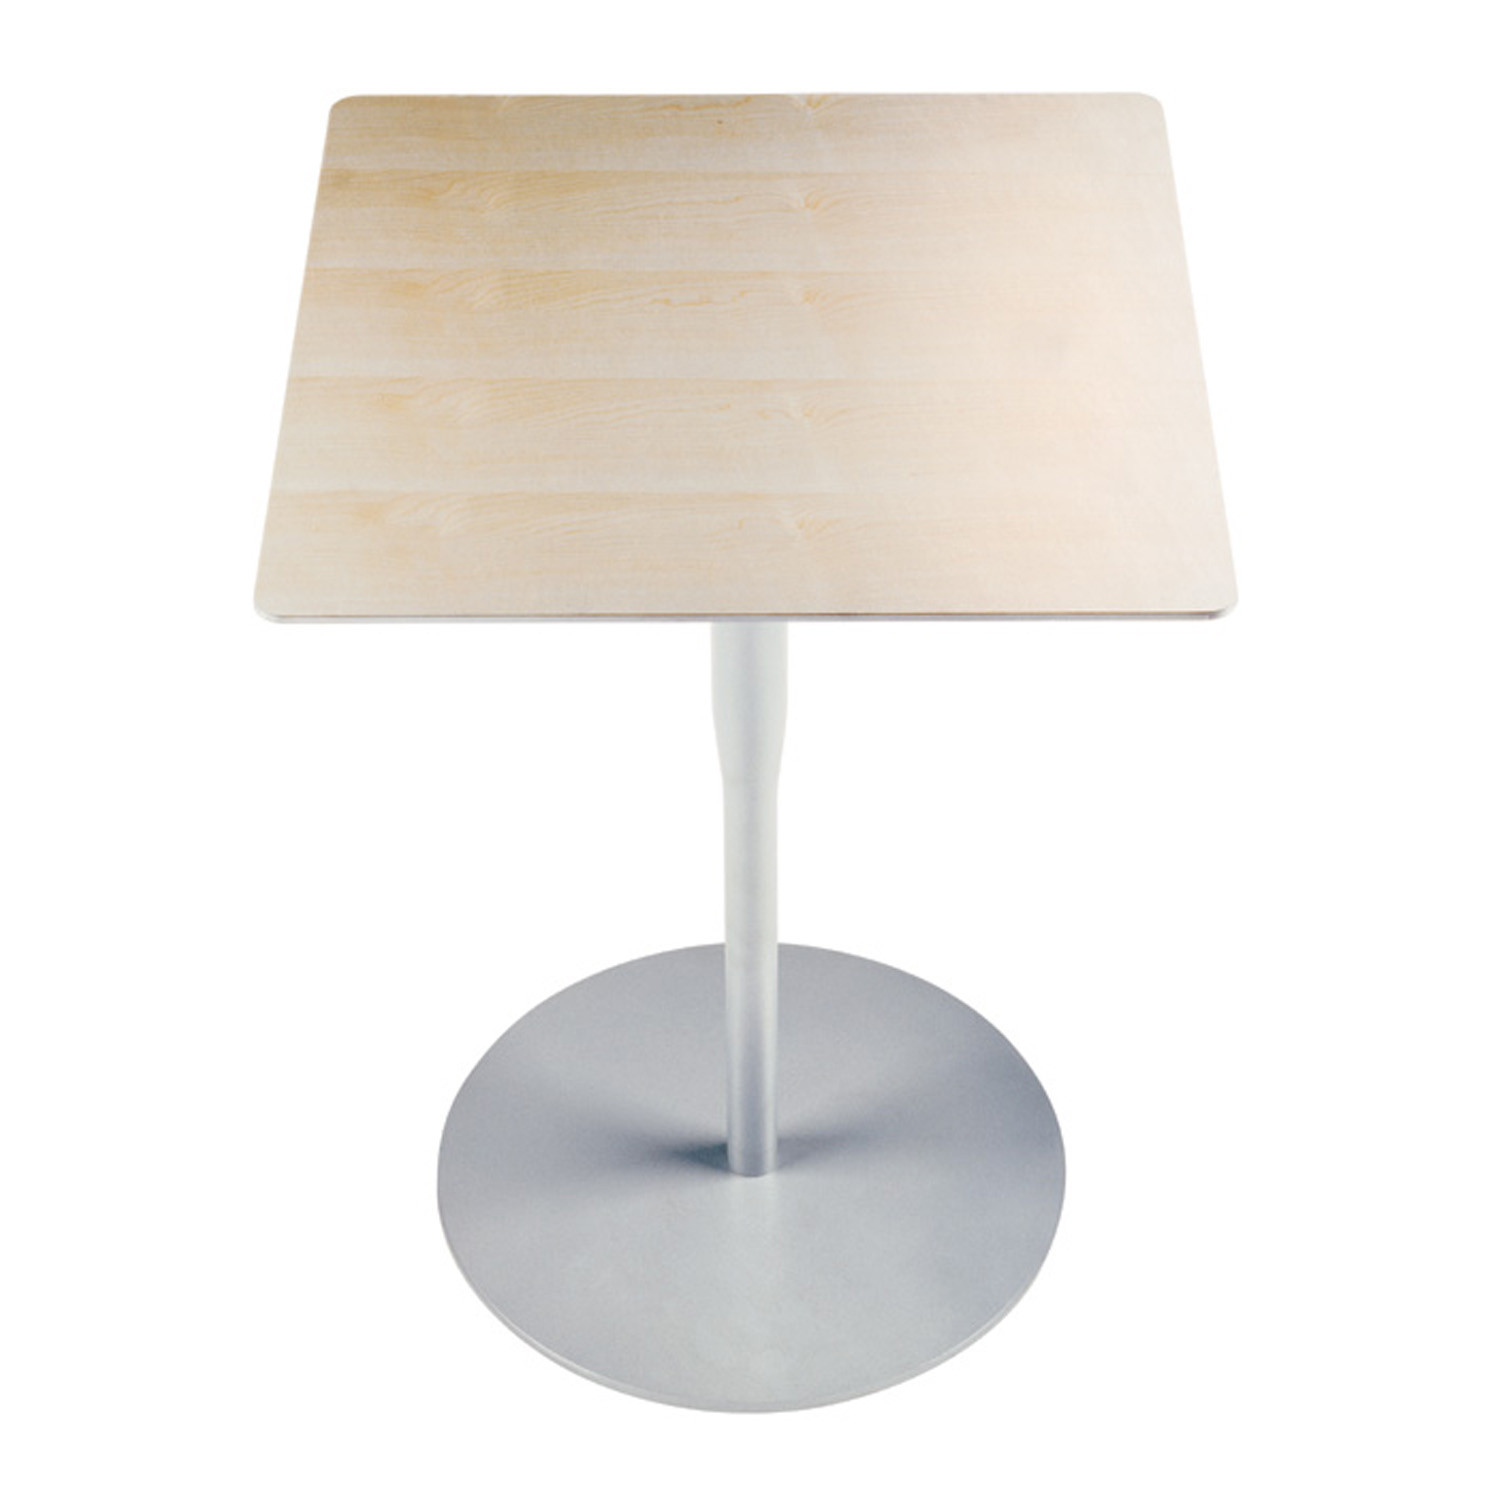 Atlas Table E with round base